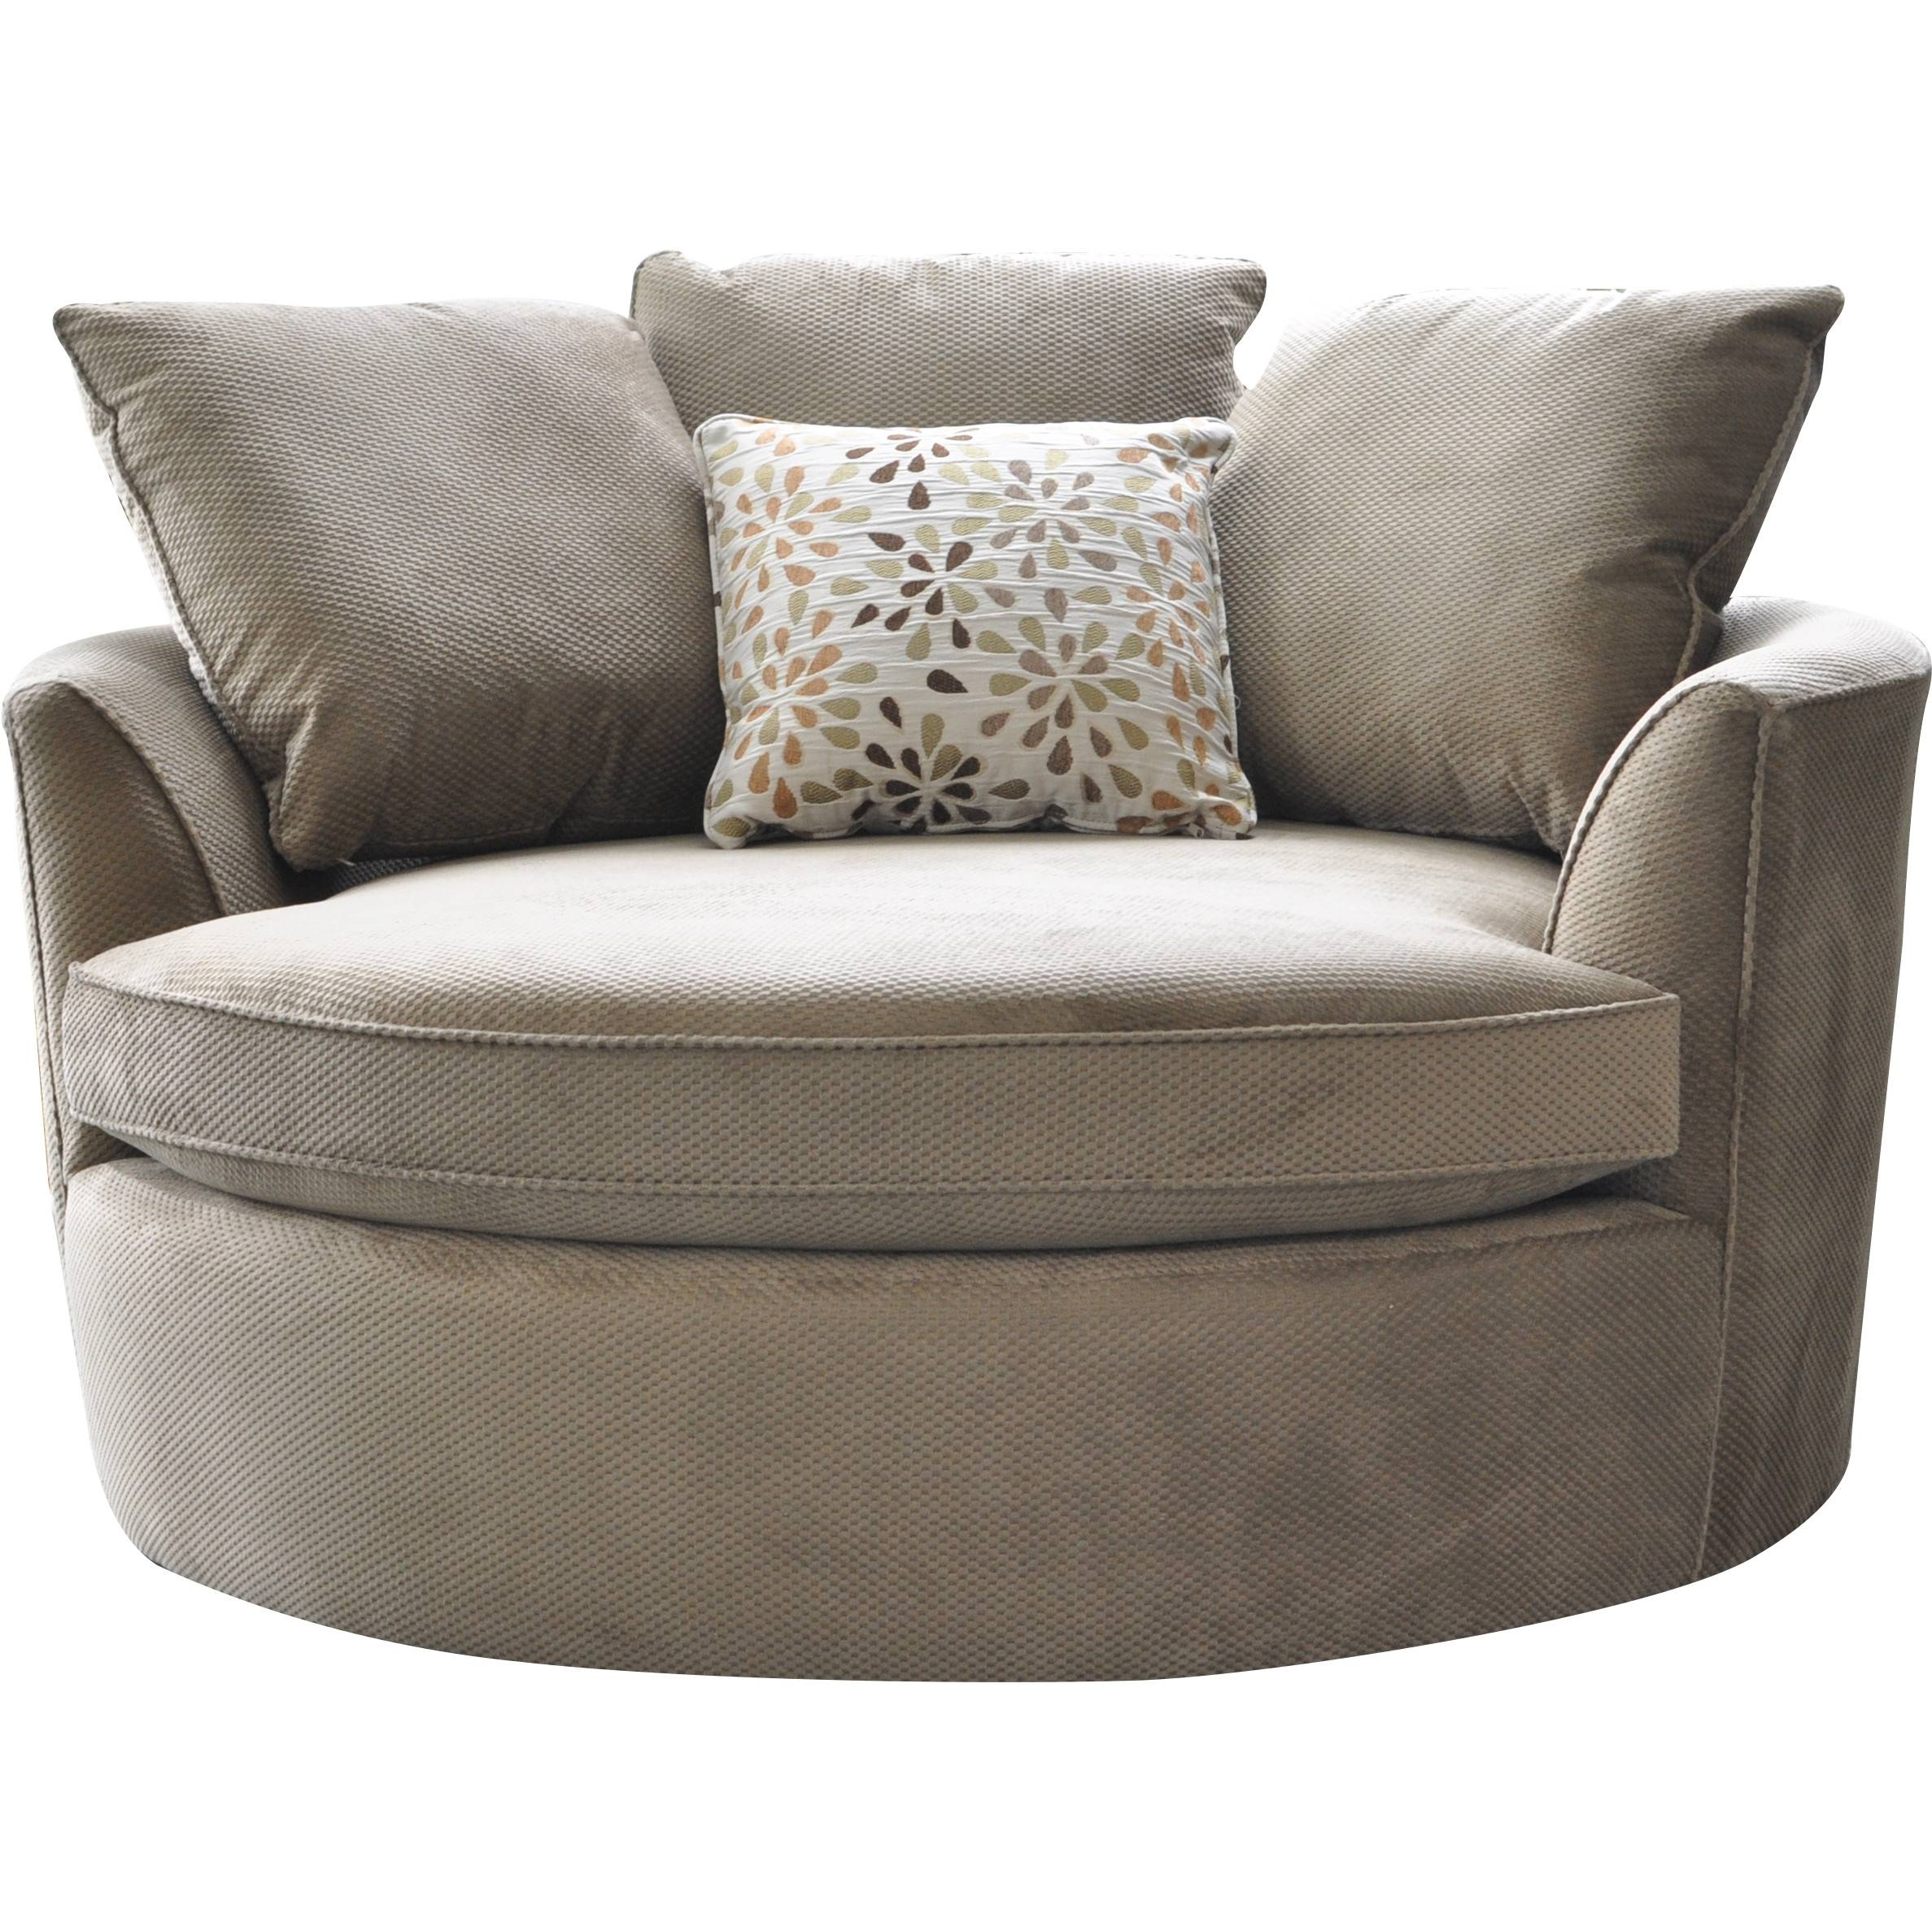 Cuddler Swivel Sofa Chair | Roselawnlutheran Within Swivel Sofa Chairs (View 14 of 30)